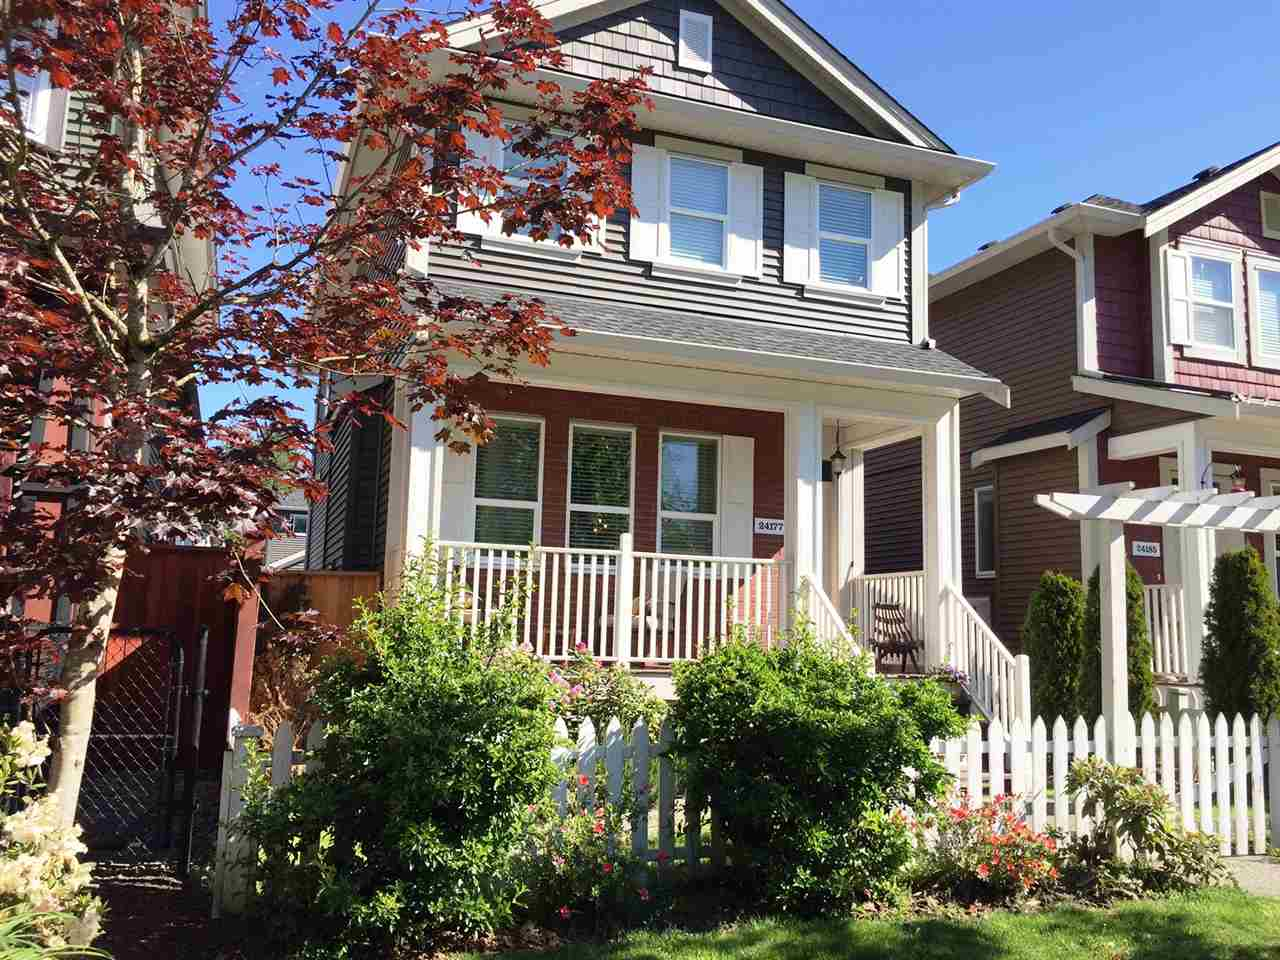 Main Photo: 24177 102 Avenue in Maple Ridge: Albion House for sale : MLS® # R2128028